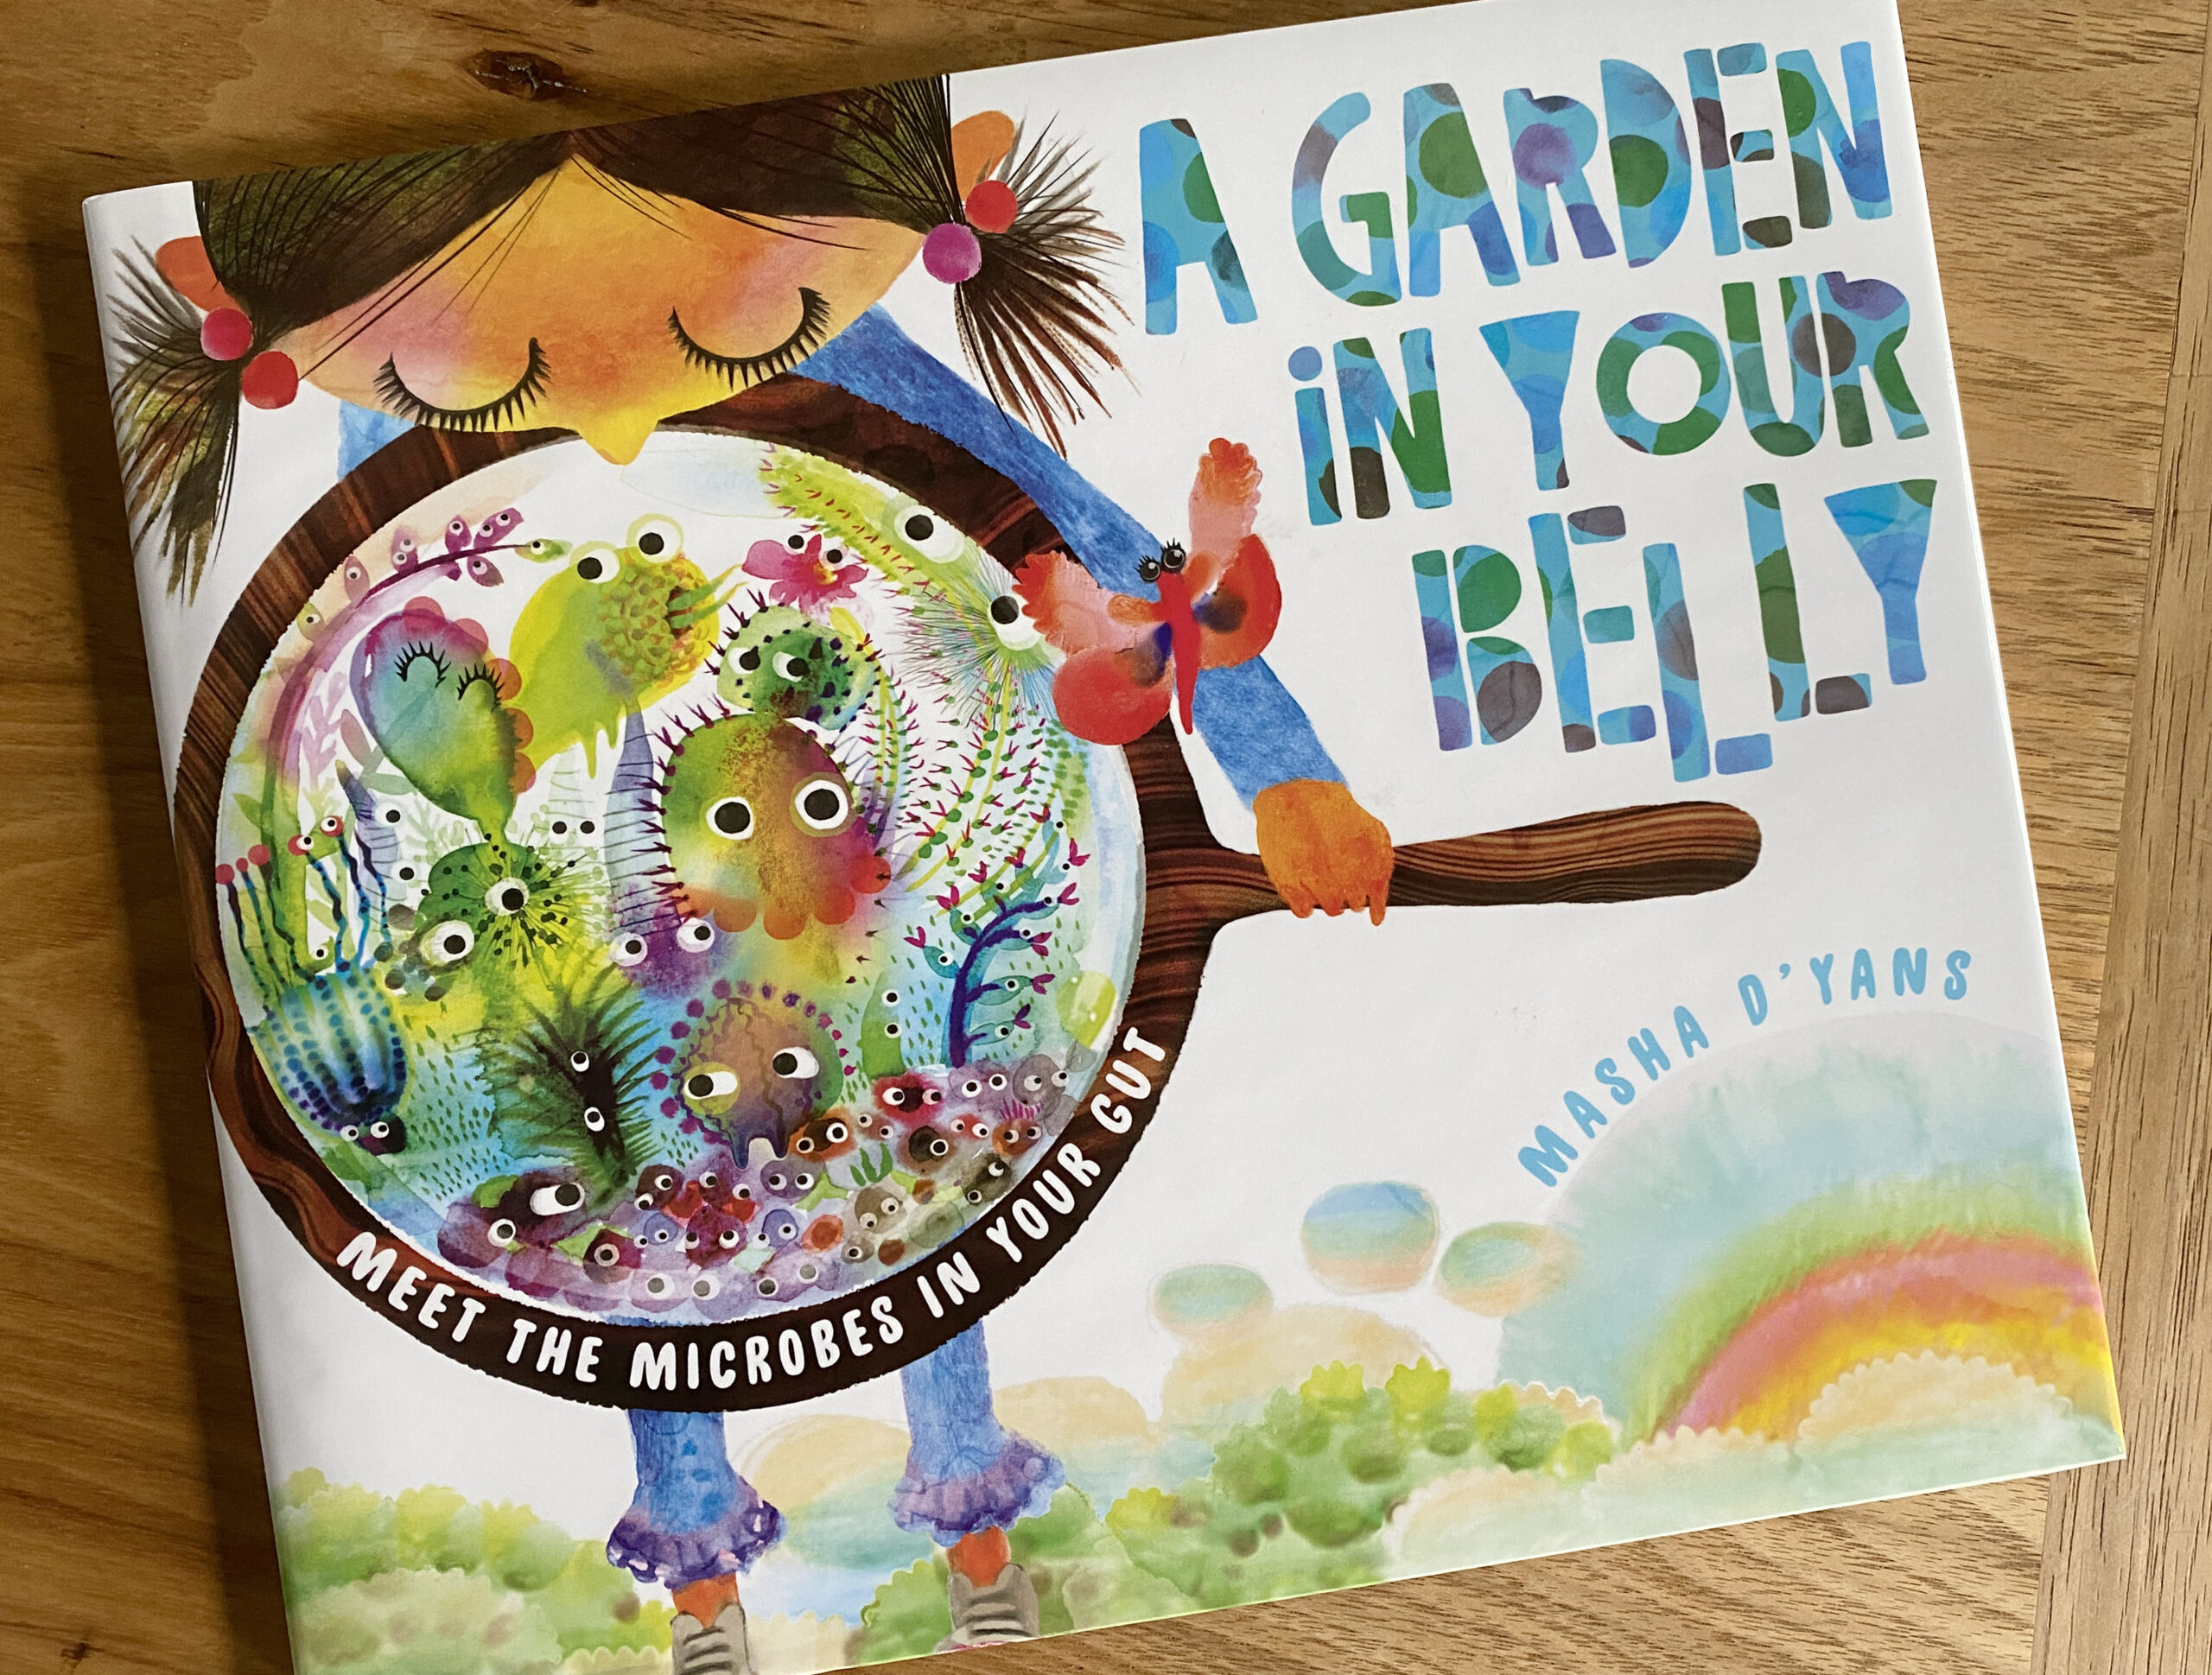 Garden In Your Belly